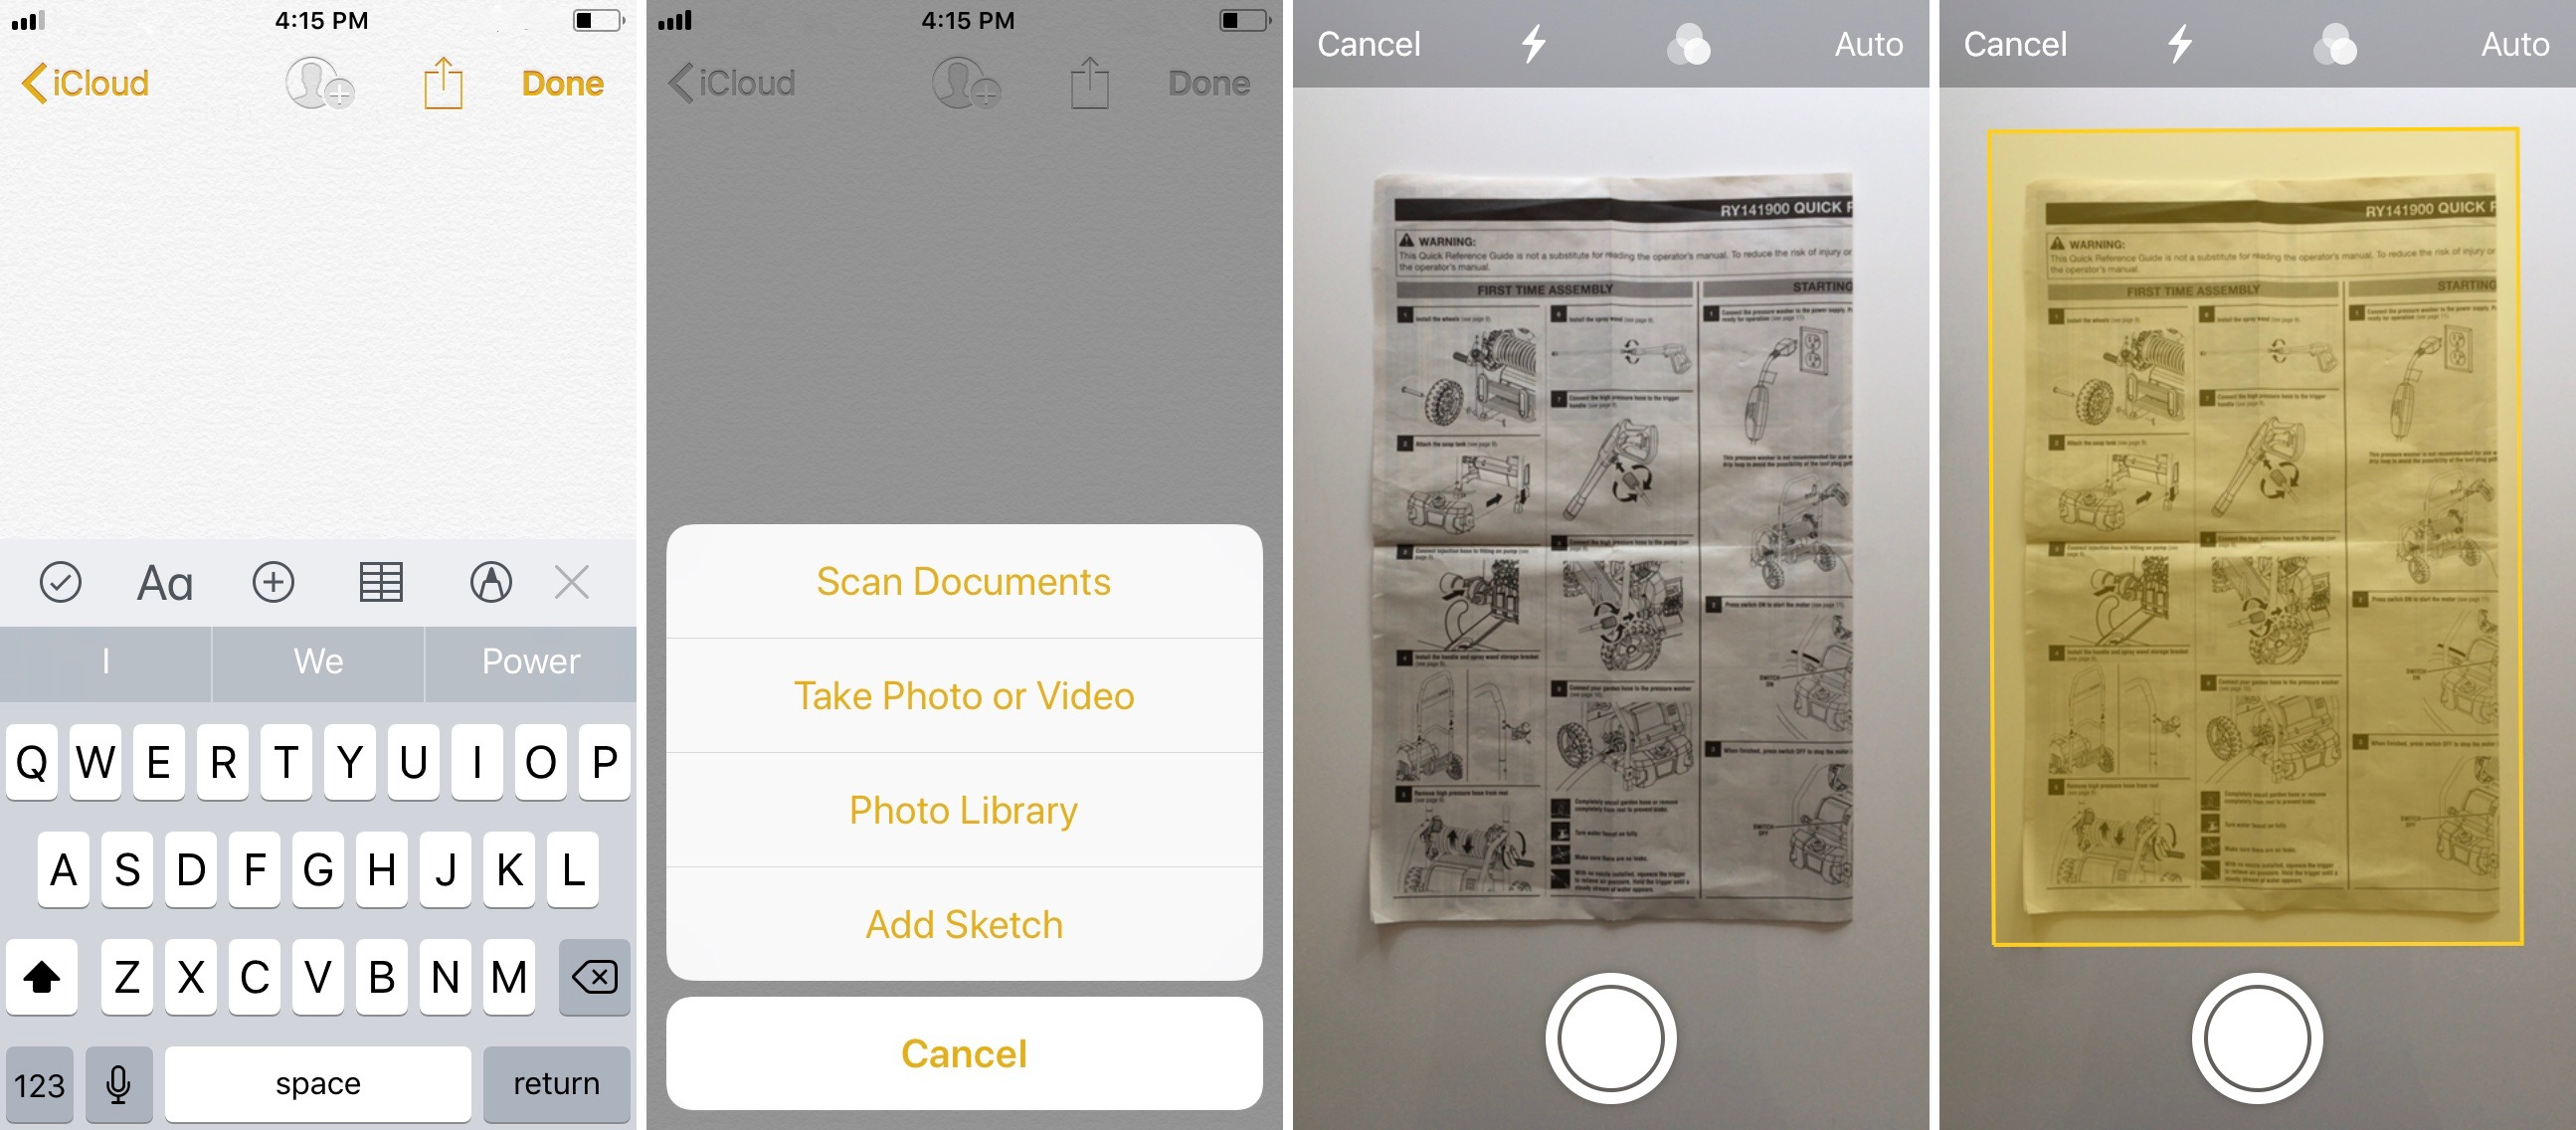 iOS 11: How to scan documents with the Notes app - 9to5Mac